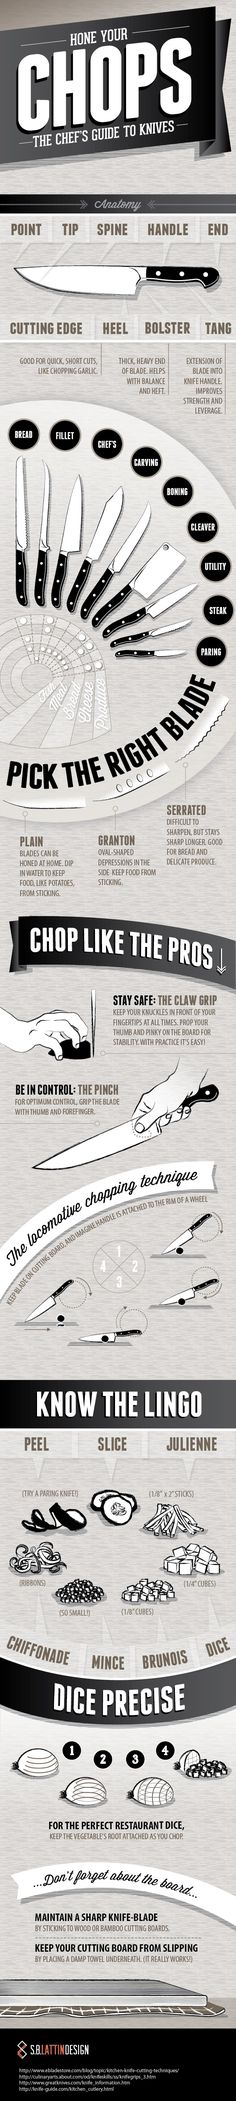 Hone Your Chops: The Chef's Guide to Knives #infographic